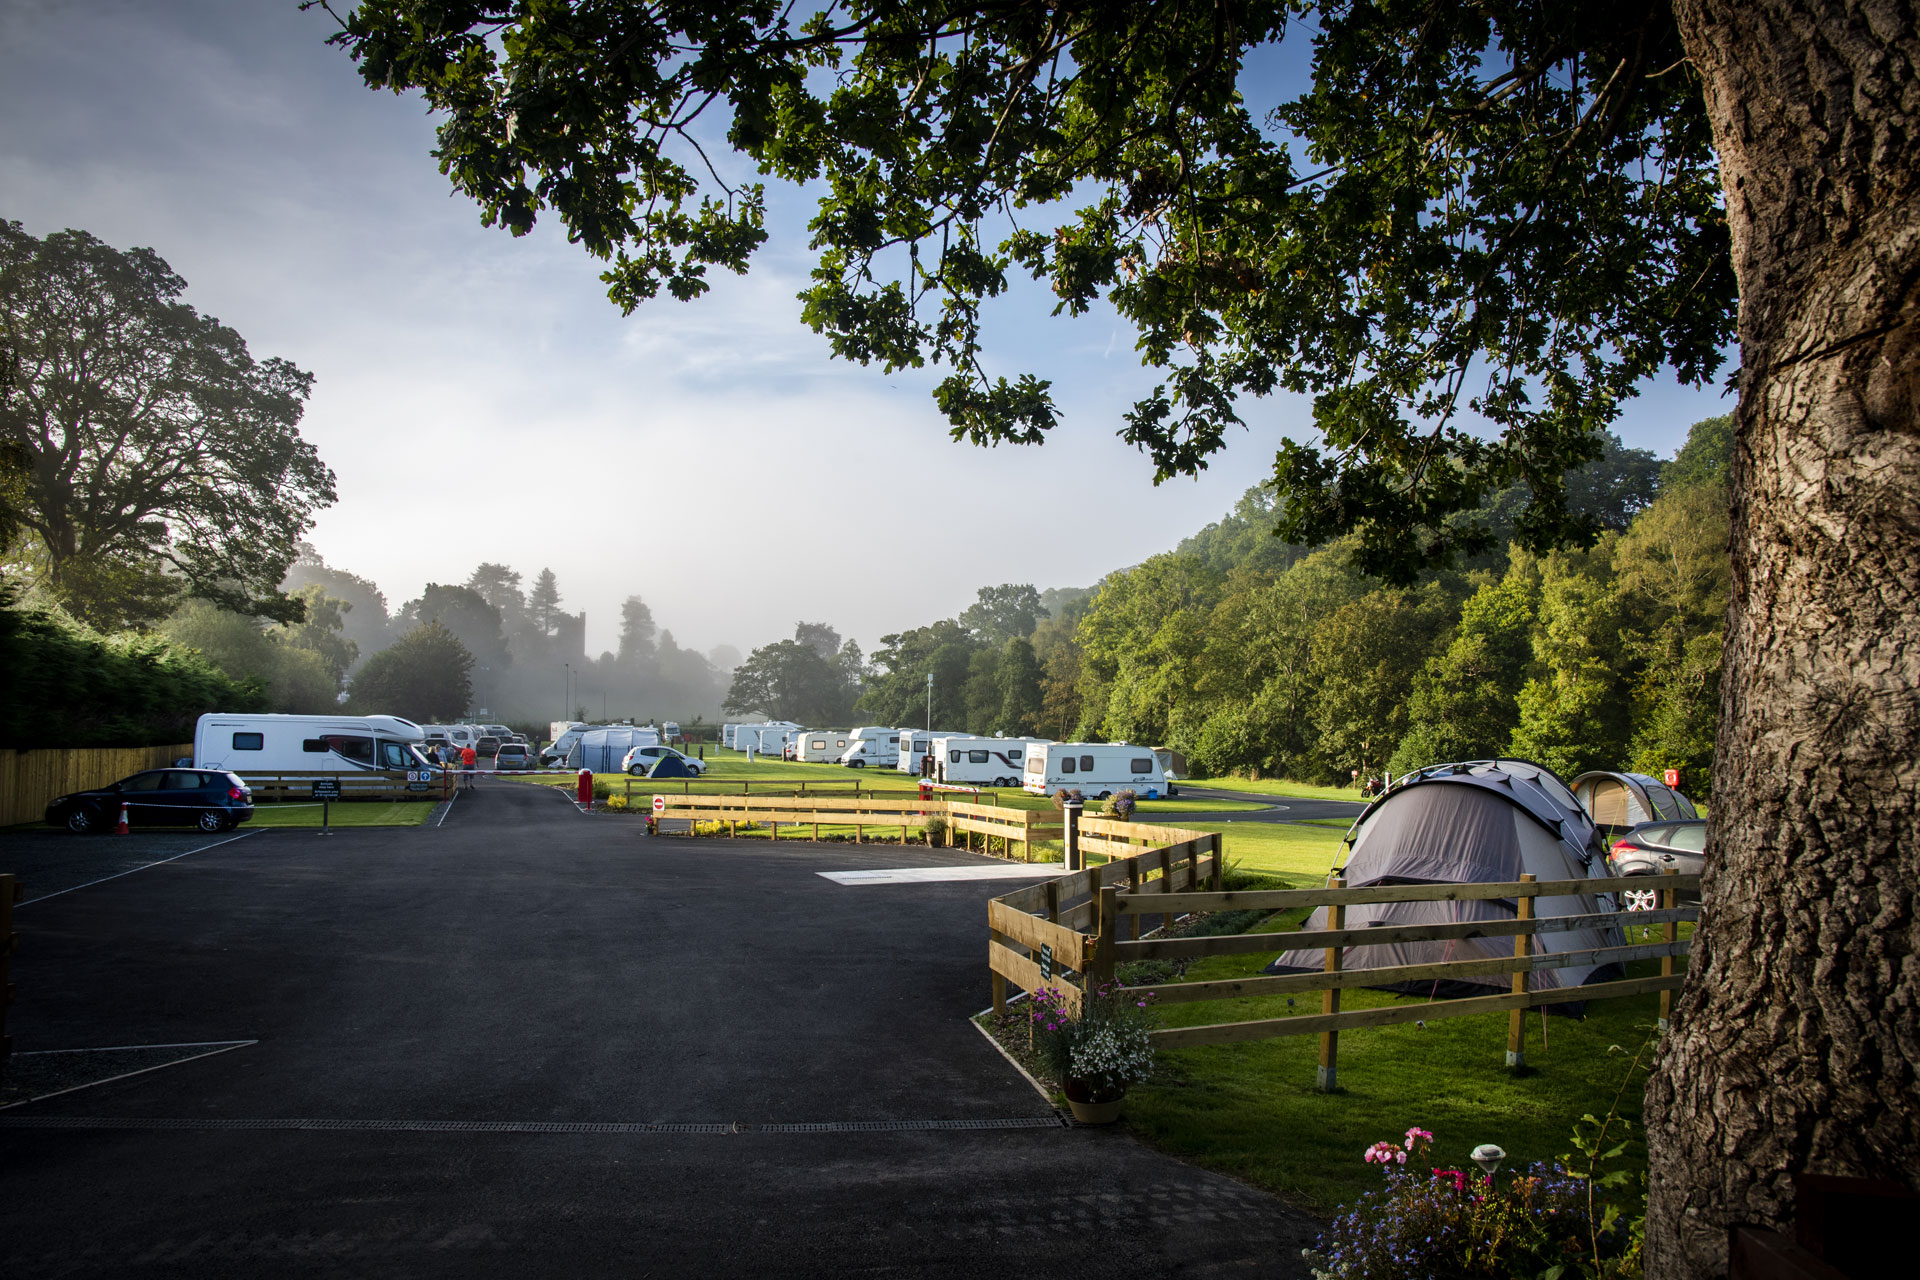 Windermere Campsite - Camping and Caravanning Club Site